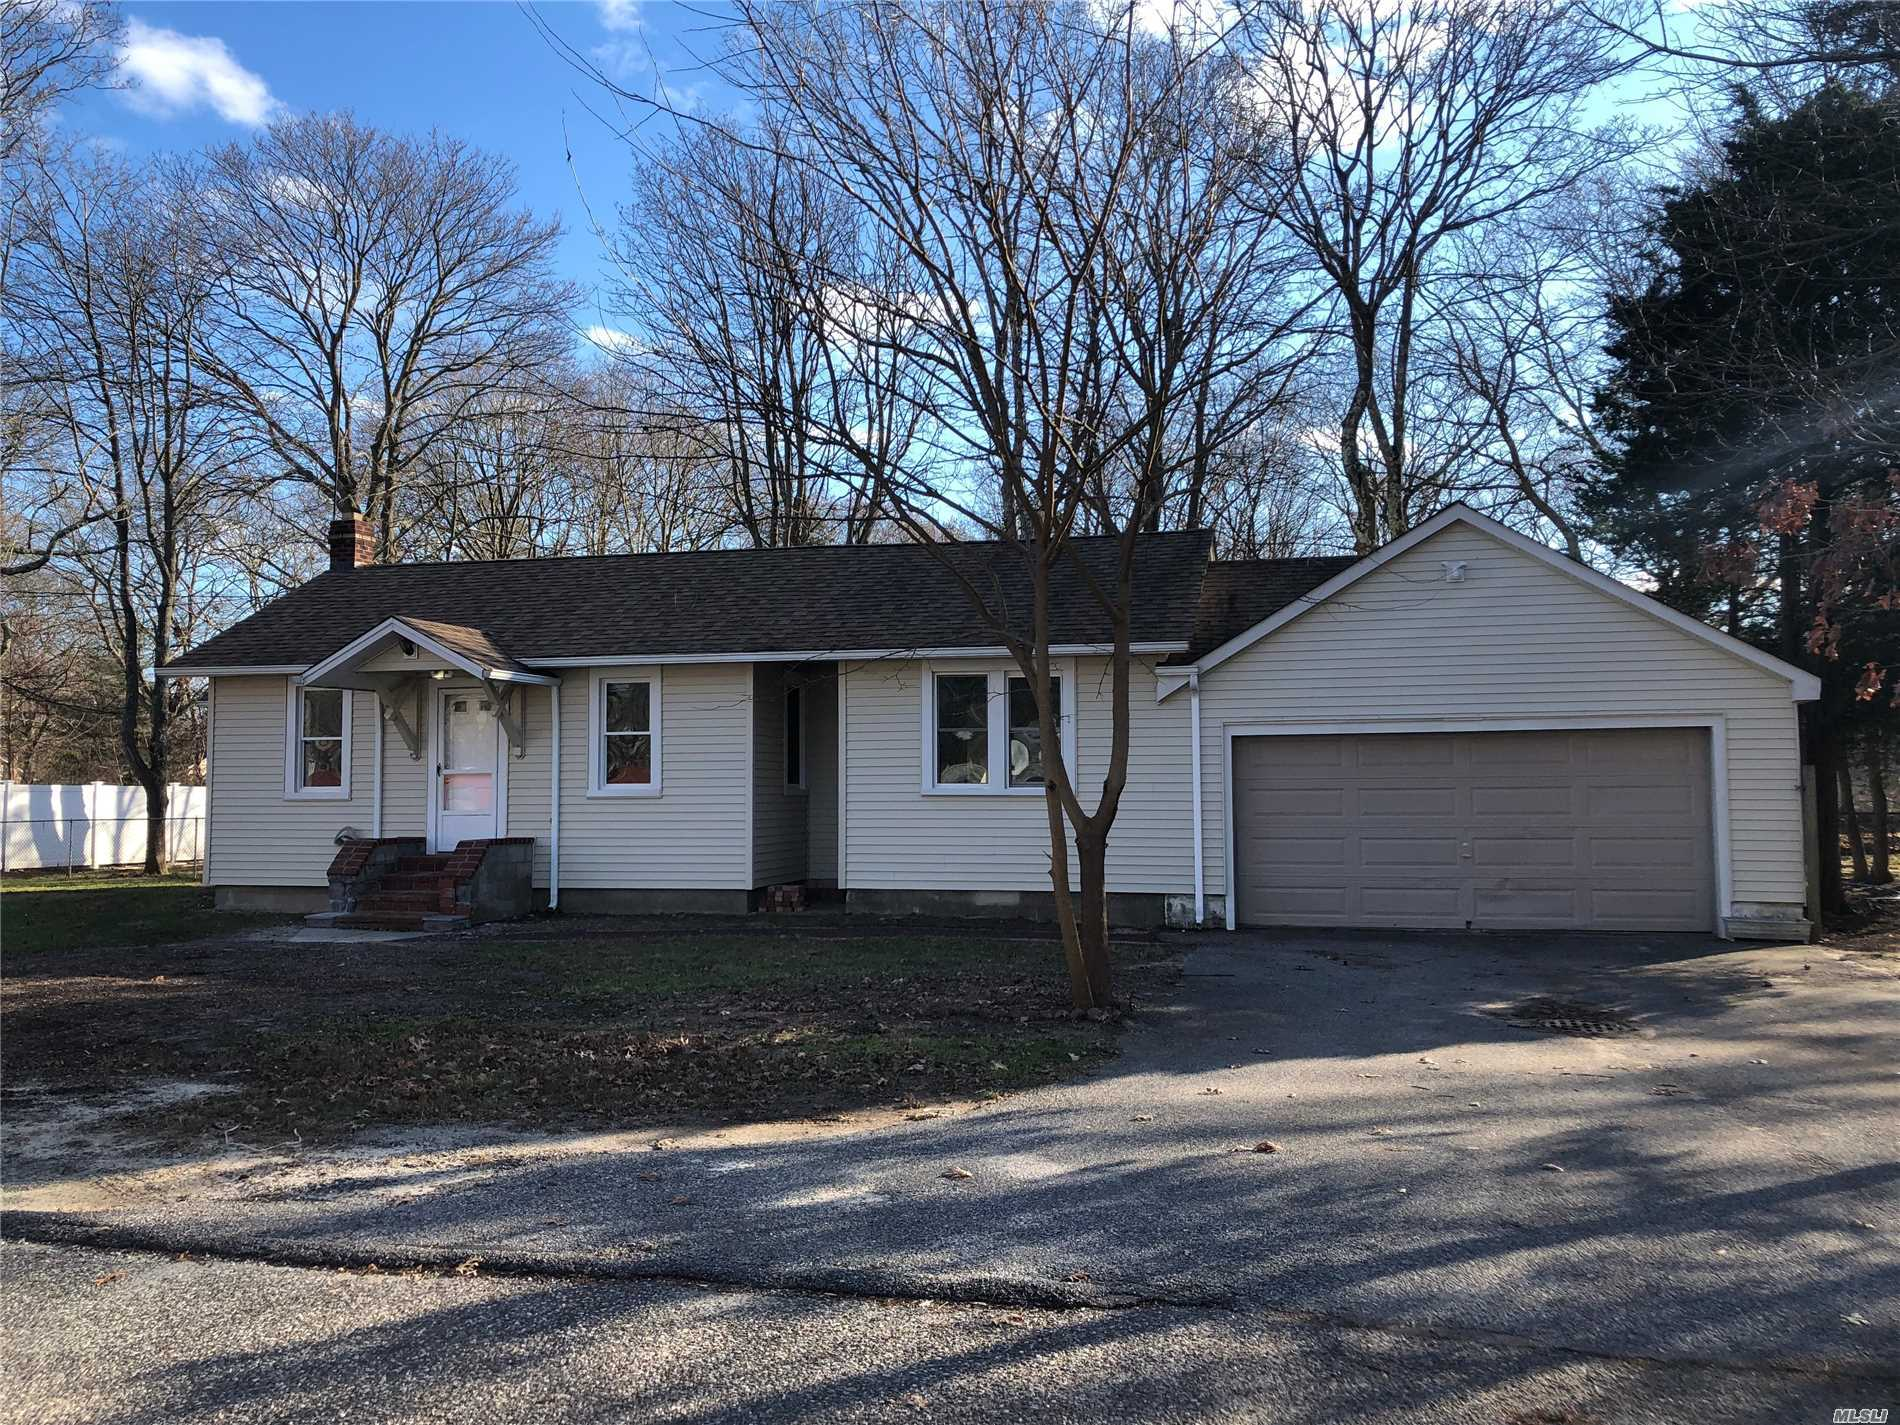 This Beautifully Renovated Home Is On An Oversized Property On A Quiet Culdesac. Features Include: 4 Bedrooms, 1.5 Bathrooms, Updated Eik W/Stainless Steel Appliances, Updated Bathroom, New Flooring & Paint, Full Basement And 2.5 Car Garage. Close To Town, Shopping & Restaurants.